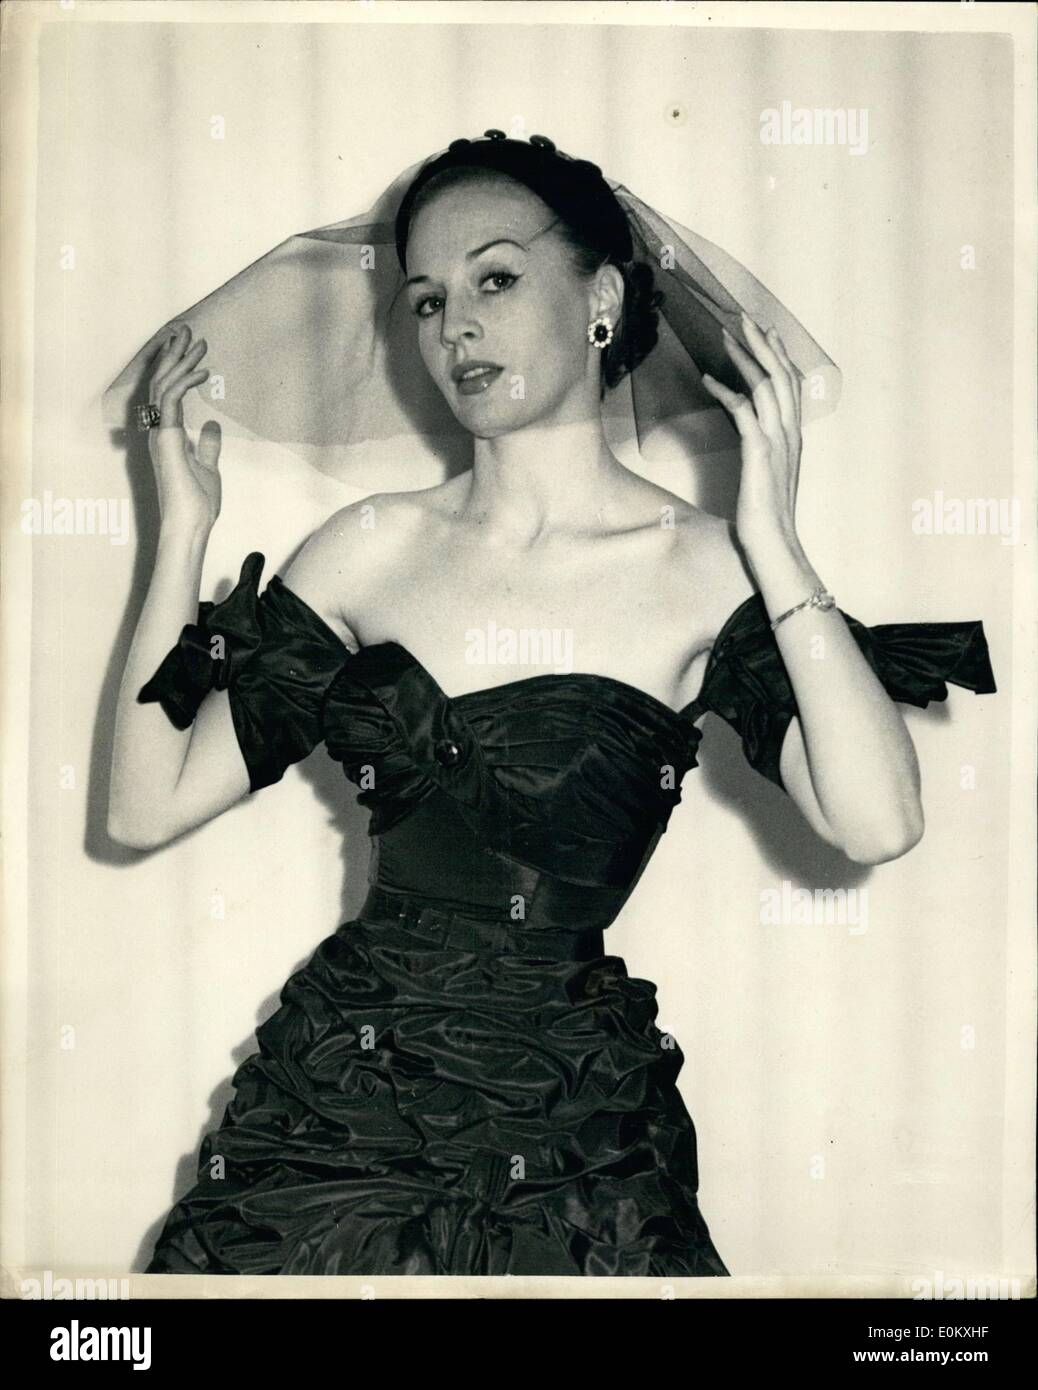 Sep. 30, 1952 - 30-9-52 Autumn Styles on Show in London. Big Guns is the name of this creation. Keystone Photo Shows: A strapless gown with detachable sleeves and black veiled skull cap and named Big Guns seen during the show of autumn styles by Rahvis in London today. - Stock Image